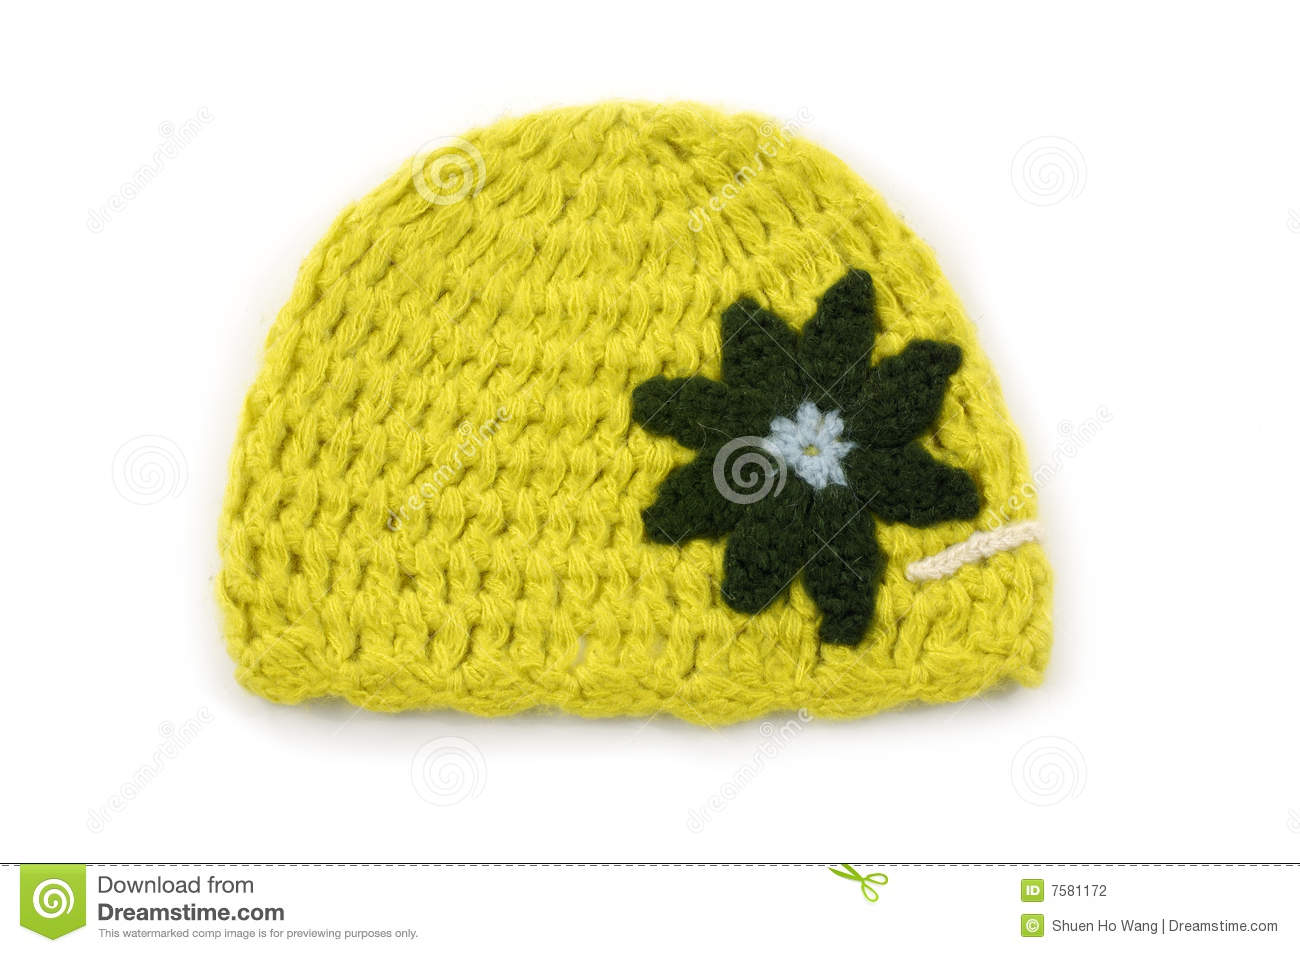 bd7bb5c4 Crocheted hat stock photo. Image of worn, cozy, comfortable - 7581172